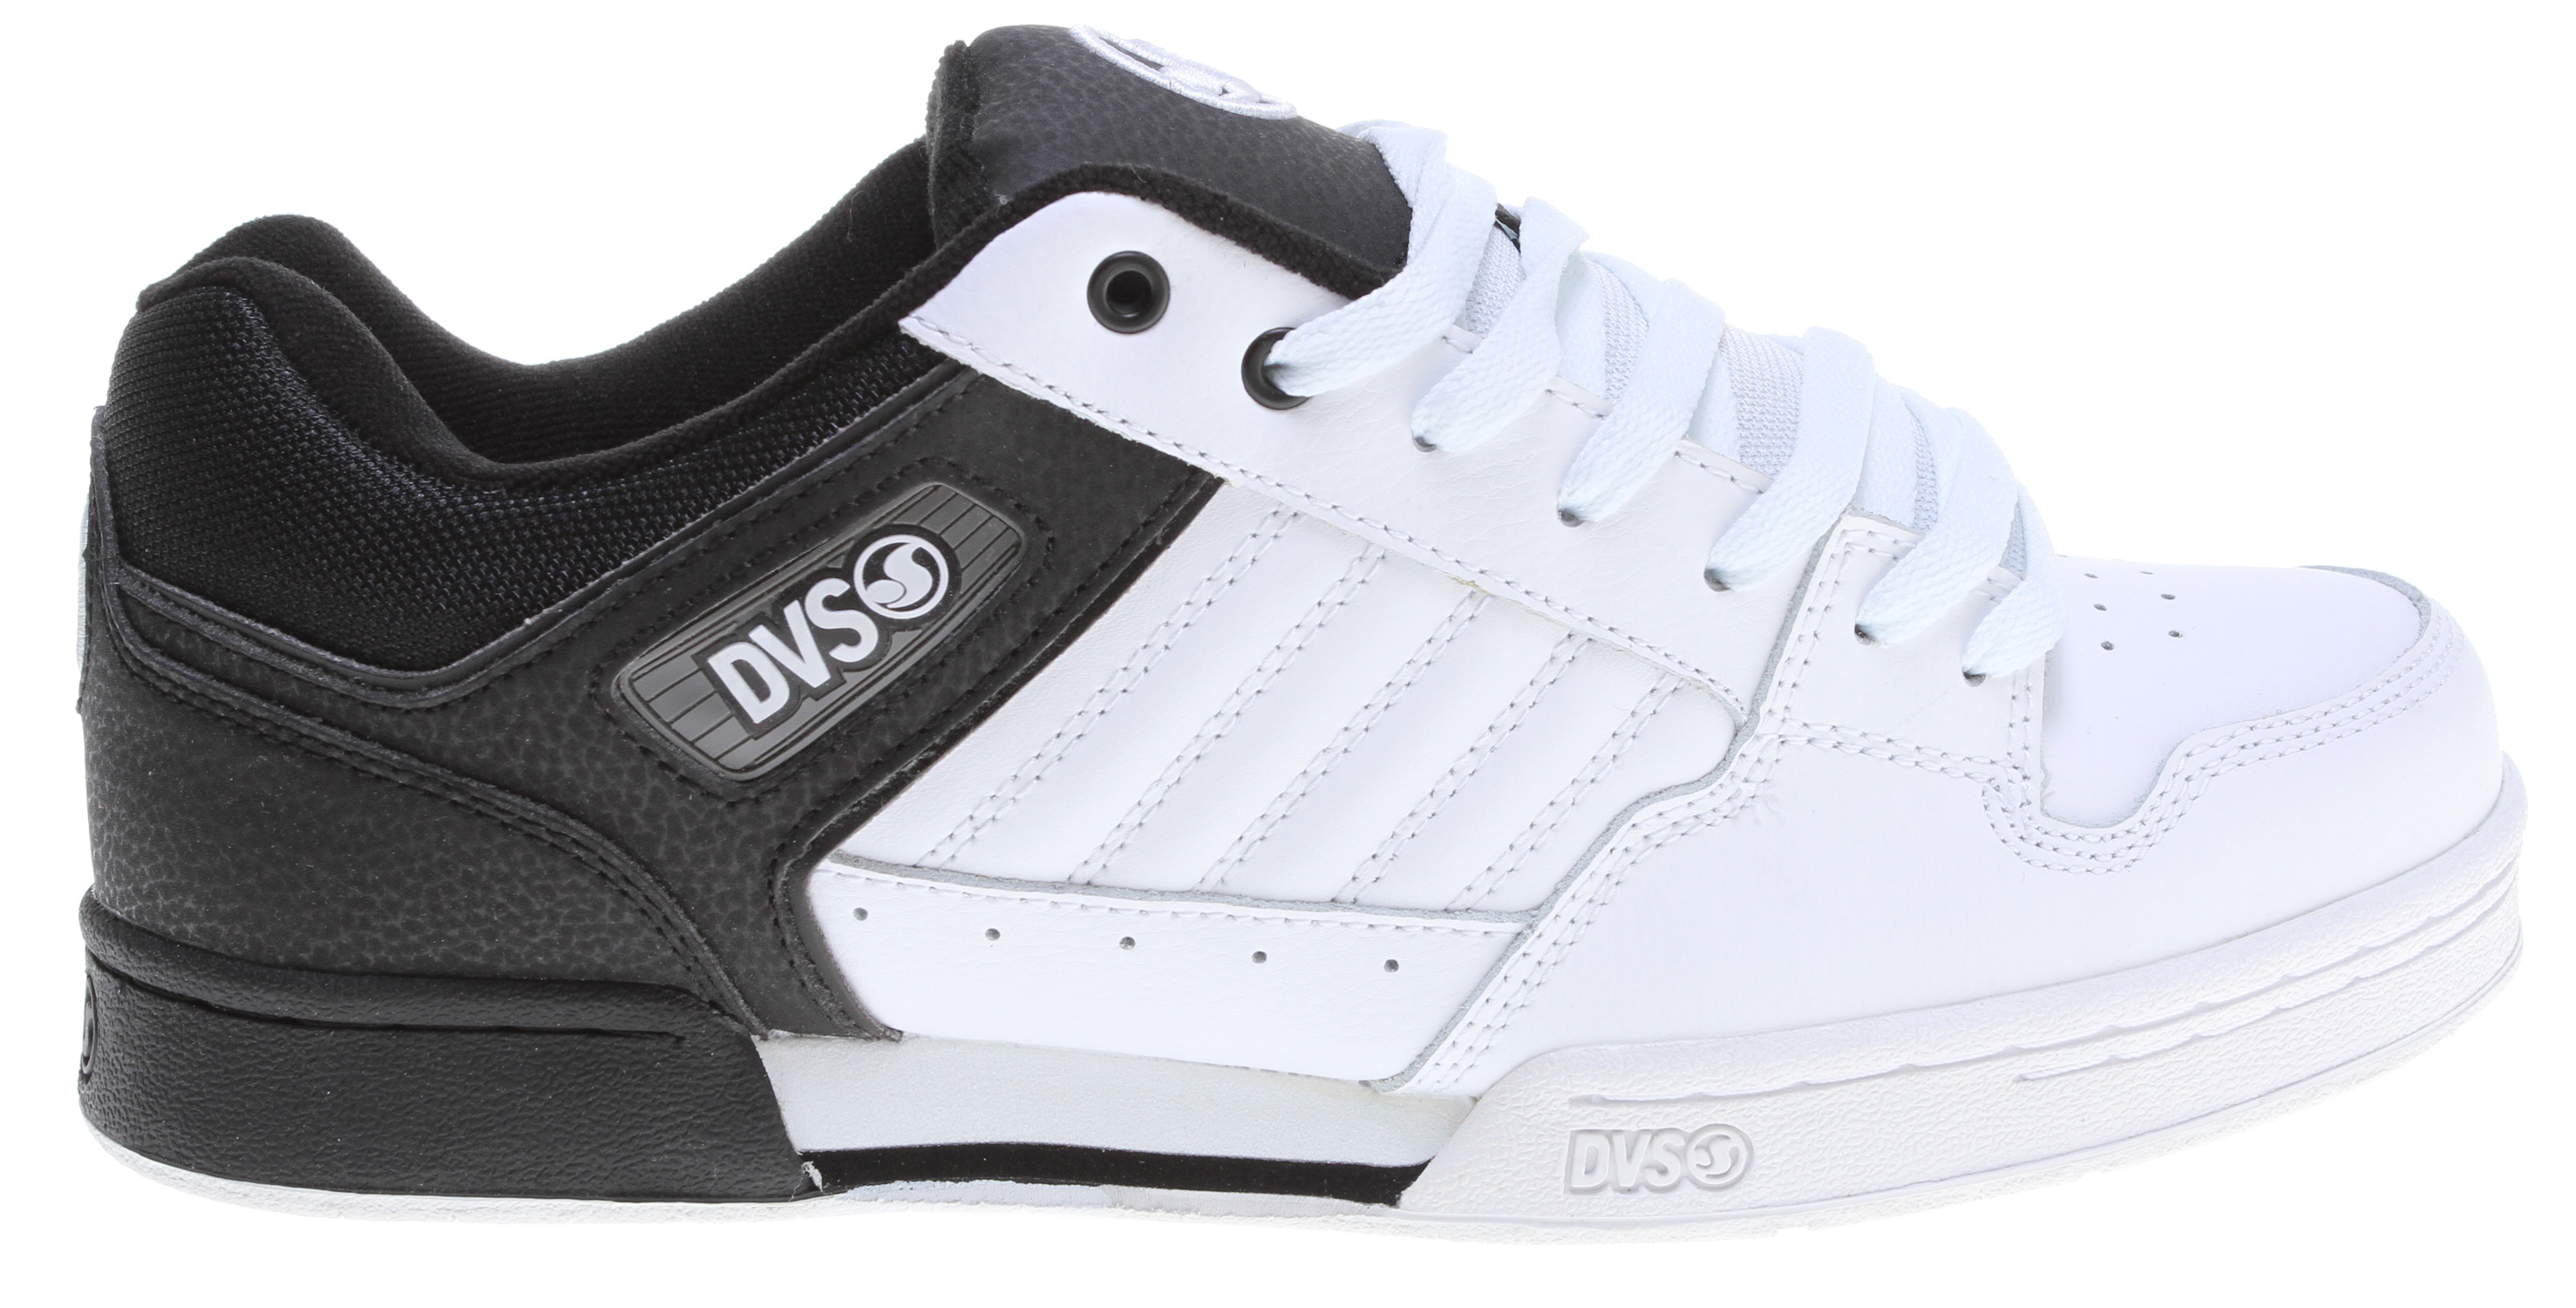 Skateboard Key Features of the DVS Durham Skate Shoes: Leather/Nubuck/Suede upper material Ventilated mesh panels for breathability High density collar & tongue padding for support High impact insole & midsole unit - $45.95